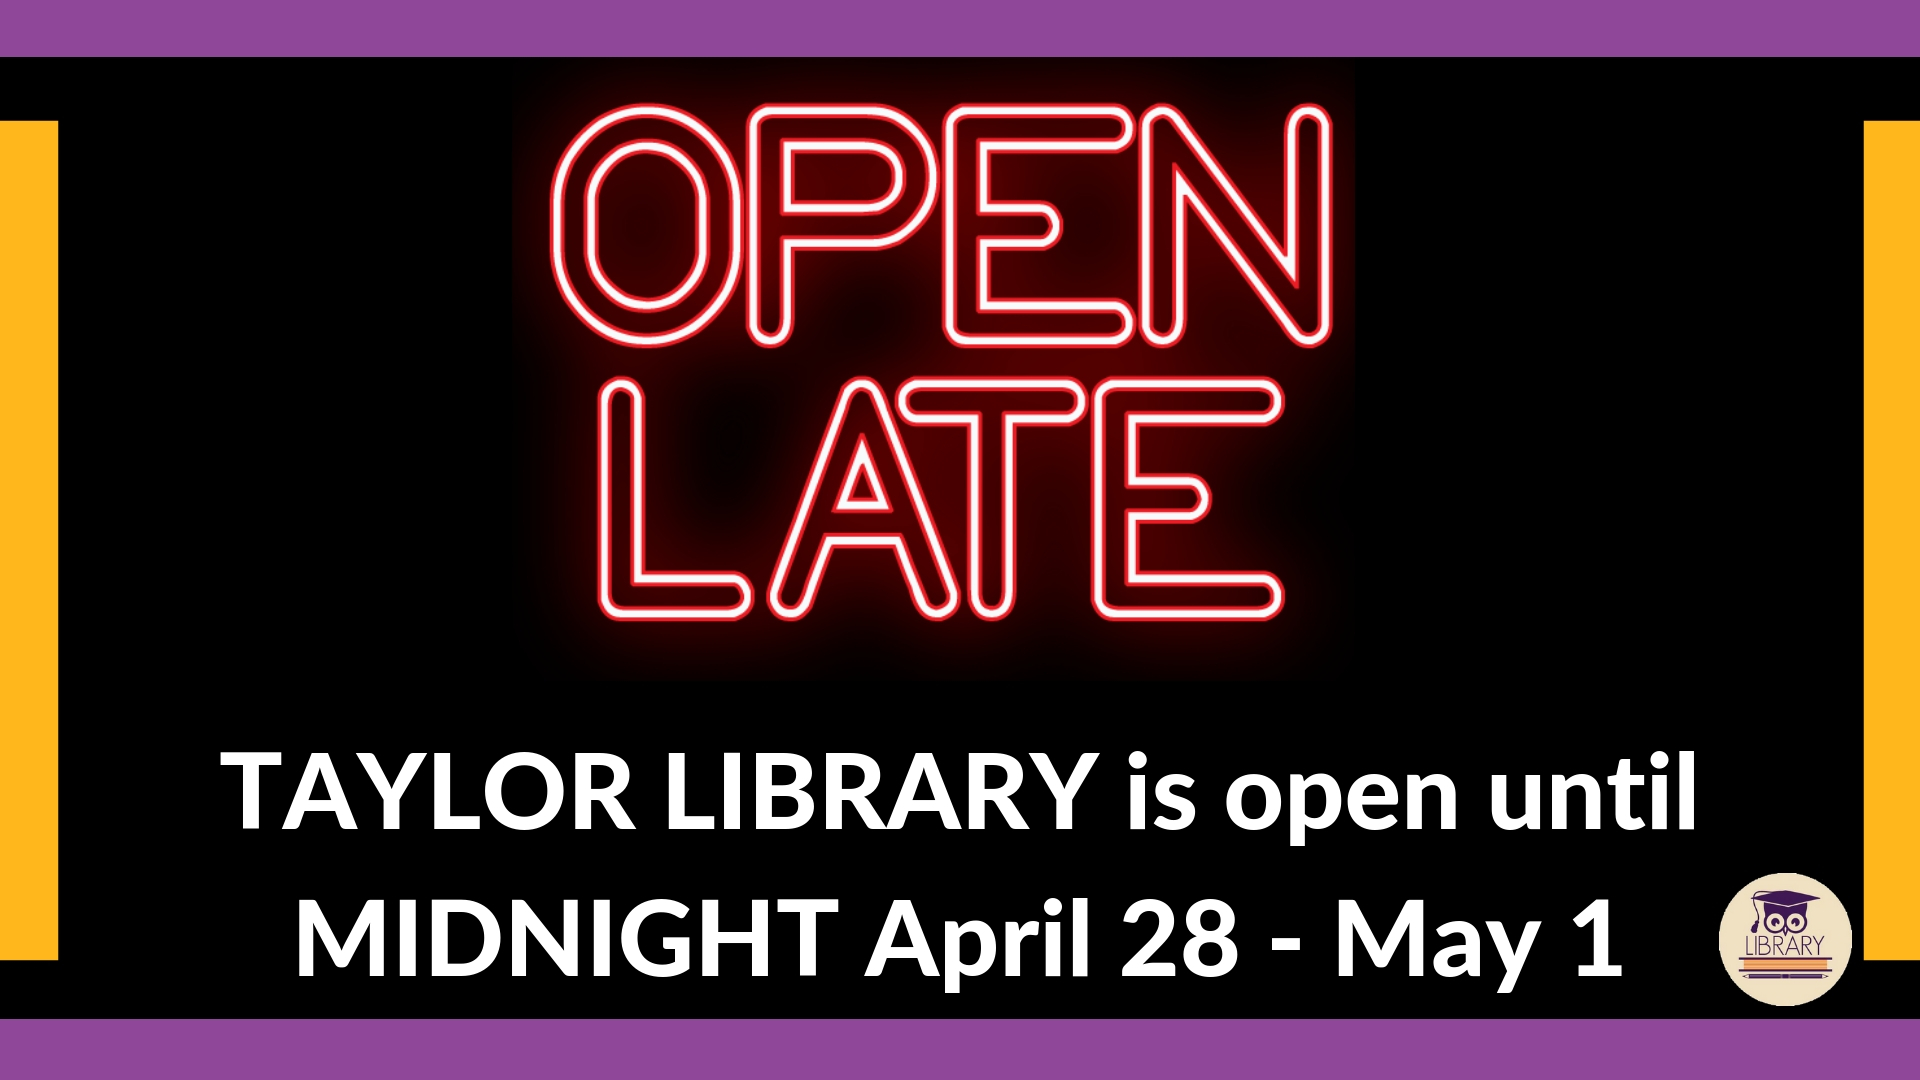 Library is open until Midnight December 9-12